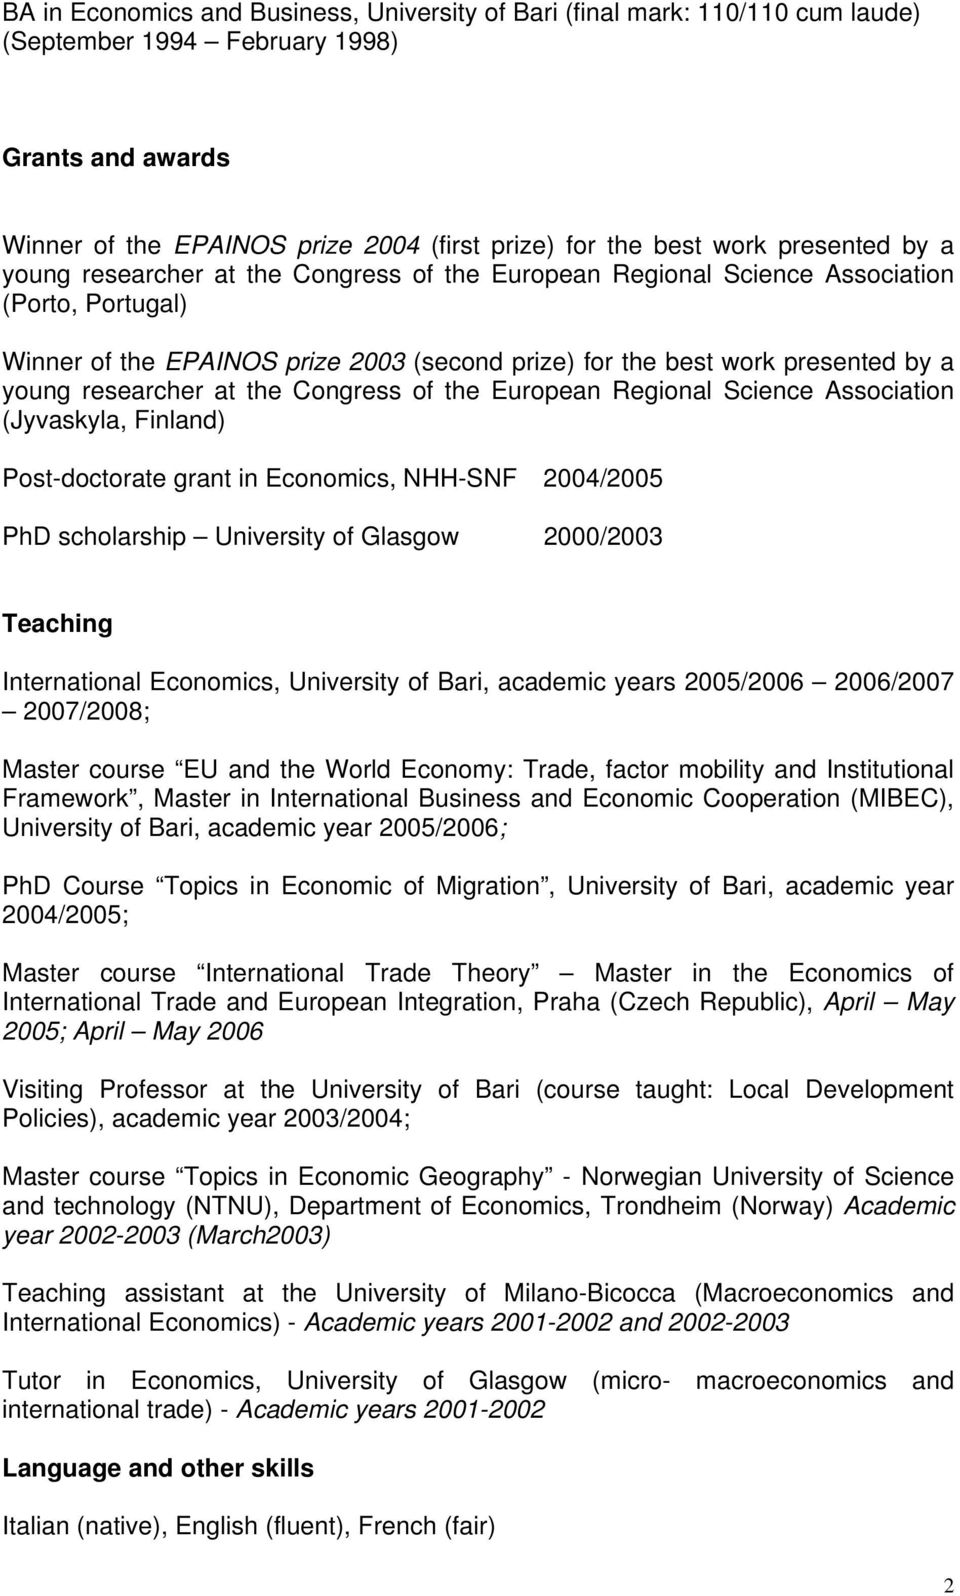 researcher at the Congress of the European Regional Science Association (Jyvaskyla, Finland) Post-doctorate grant in Economics, NHH-SNF 2004/2005 PhD scholarship University of Glasgow 2000/2003